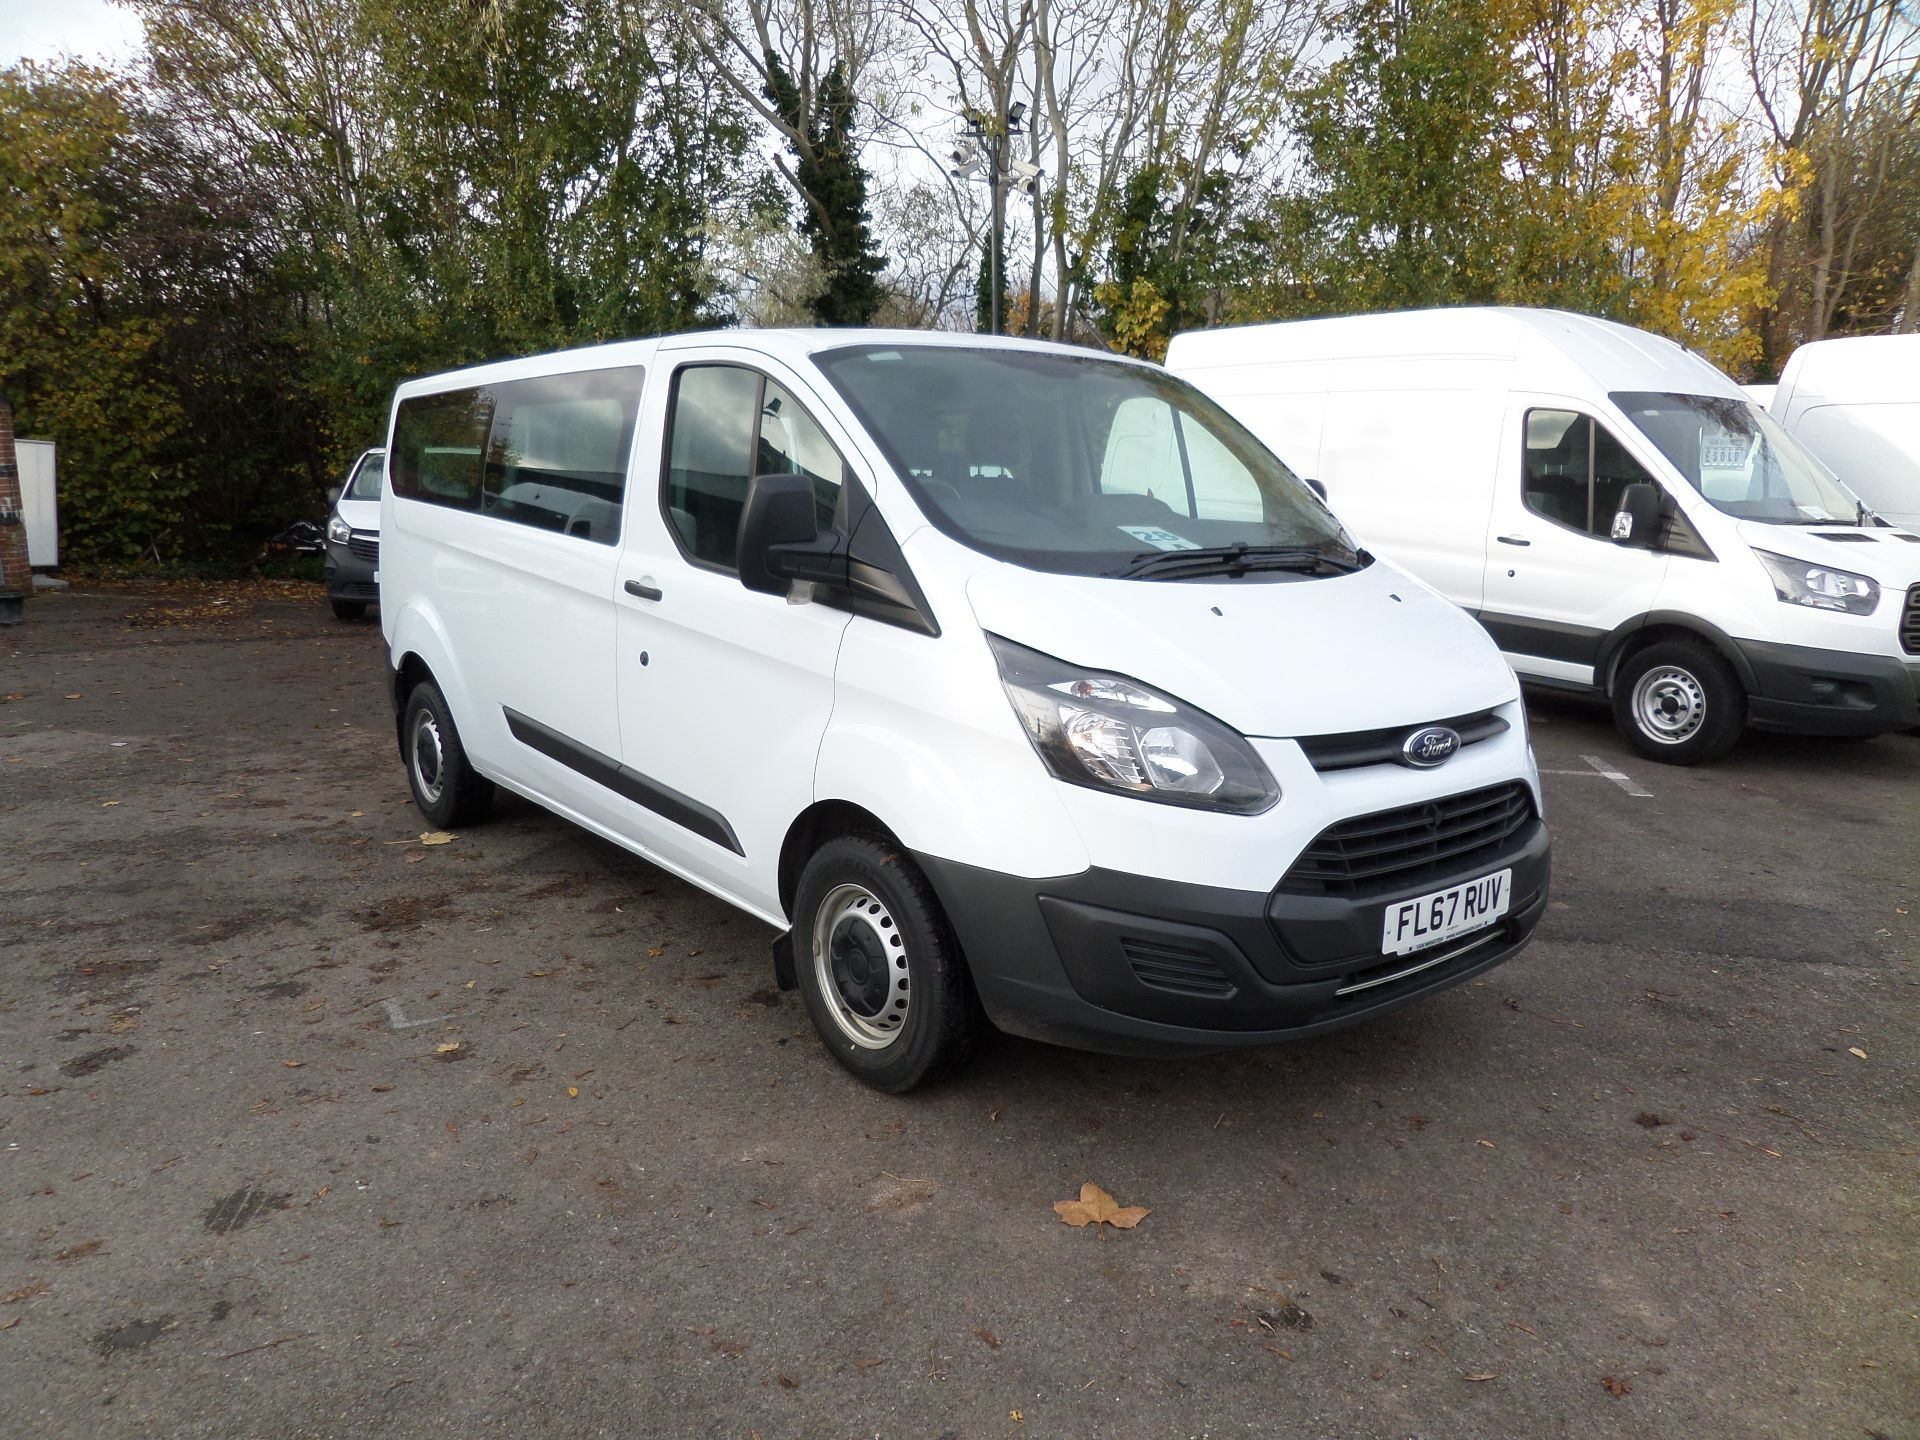 2017 Ford Transit Custom 2.0 Tdci 130Ps Low Roof Kombi 9 Seater MinibusVan Euro 6 (FL67RUV)